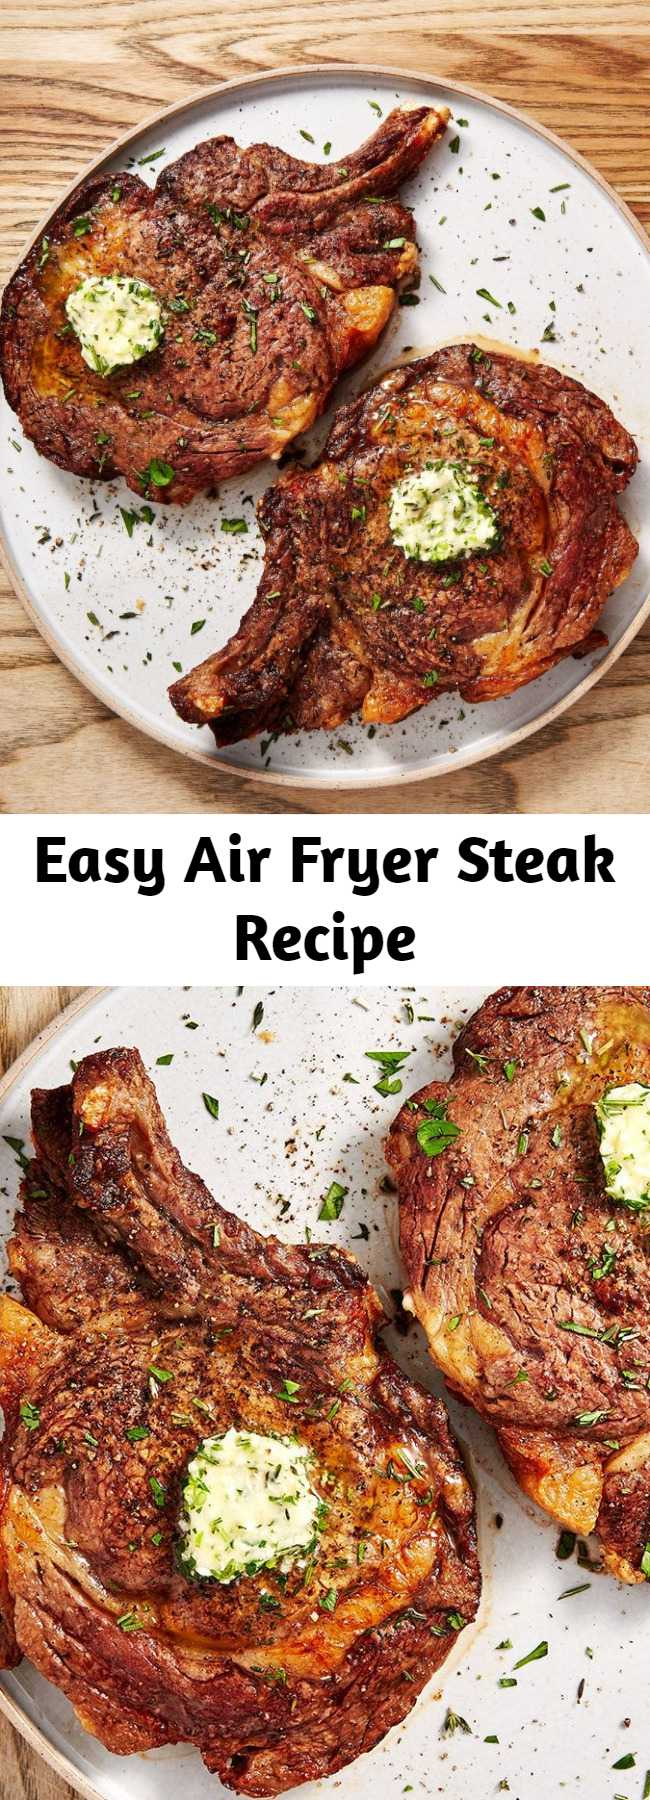 Easy Air Fryer Steak Recipe - A perfectly seared steak can seem like a daunting task. Getting the golden, crusty sear on the outside and trying not to overcook your steak can be difficult. What if we told you that your air fryer can take all of that stress away? It's true! Leave it to the air fryer to cook a perfect piece of steak all without filling your kitchen with smoke or turning on the grill. As for the herb butter? It's not mandatory, but it sure is delicious.